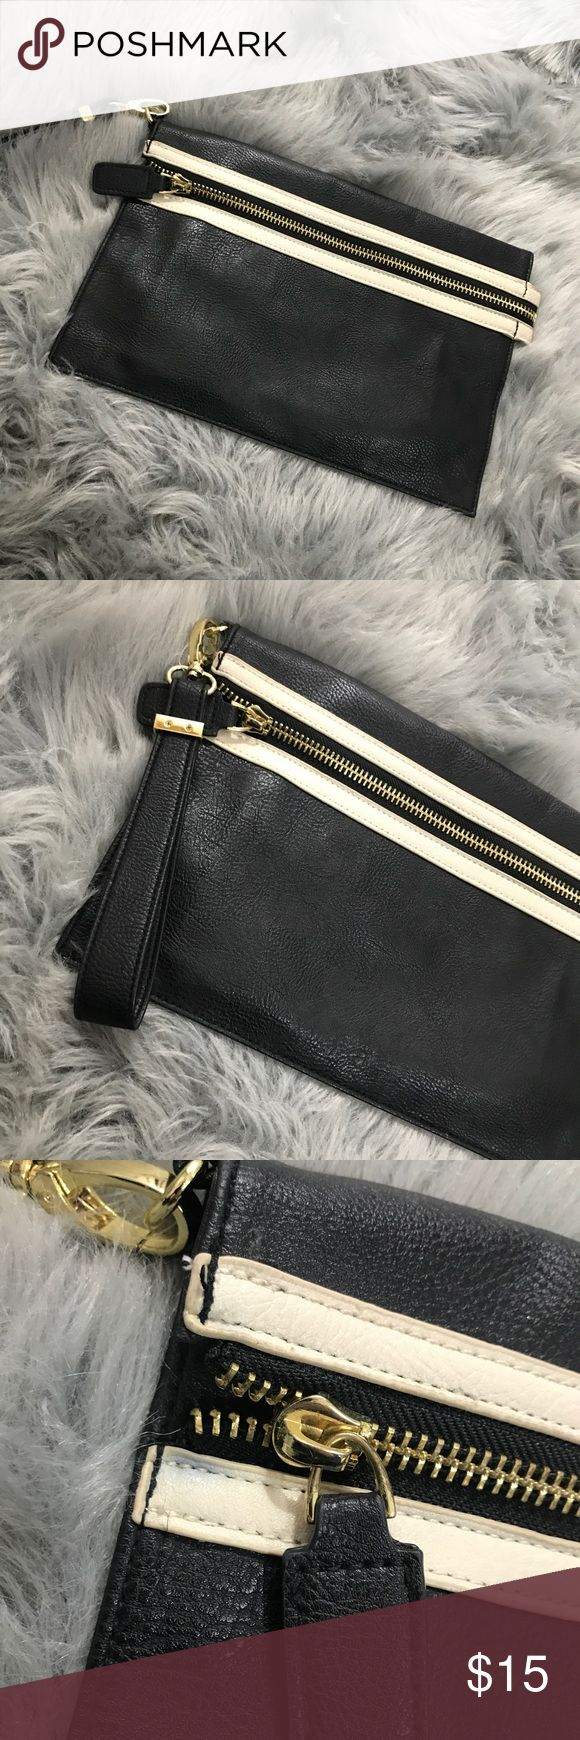 """Big Buddha clutch Brand is Bug Buddha. It is 12""""x8"""" with a 7"""" detachable handle. Only been used a few times. Does have small blue staining on the left side start of the zipper. (Shown in the picture). Big Buddha Bags Clutches & Wristlets"""